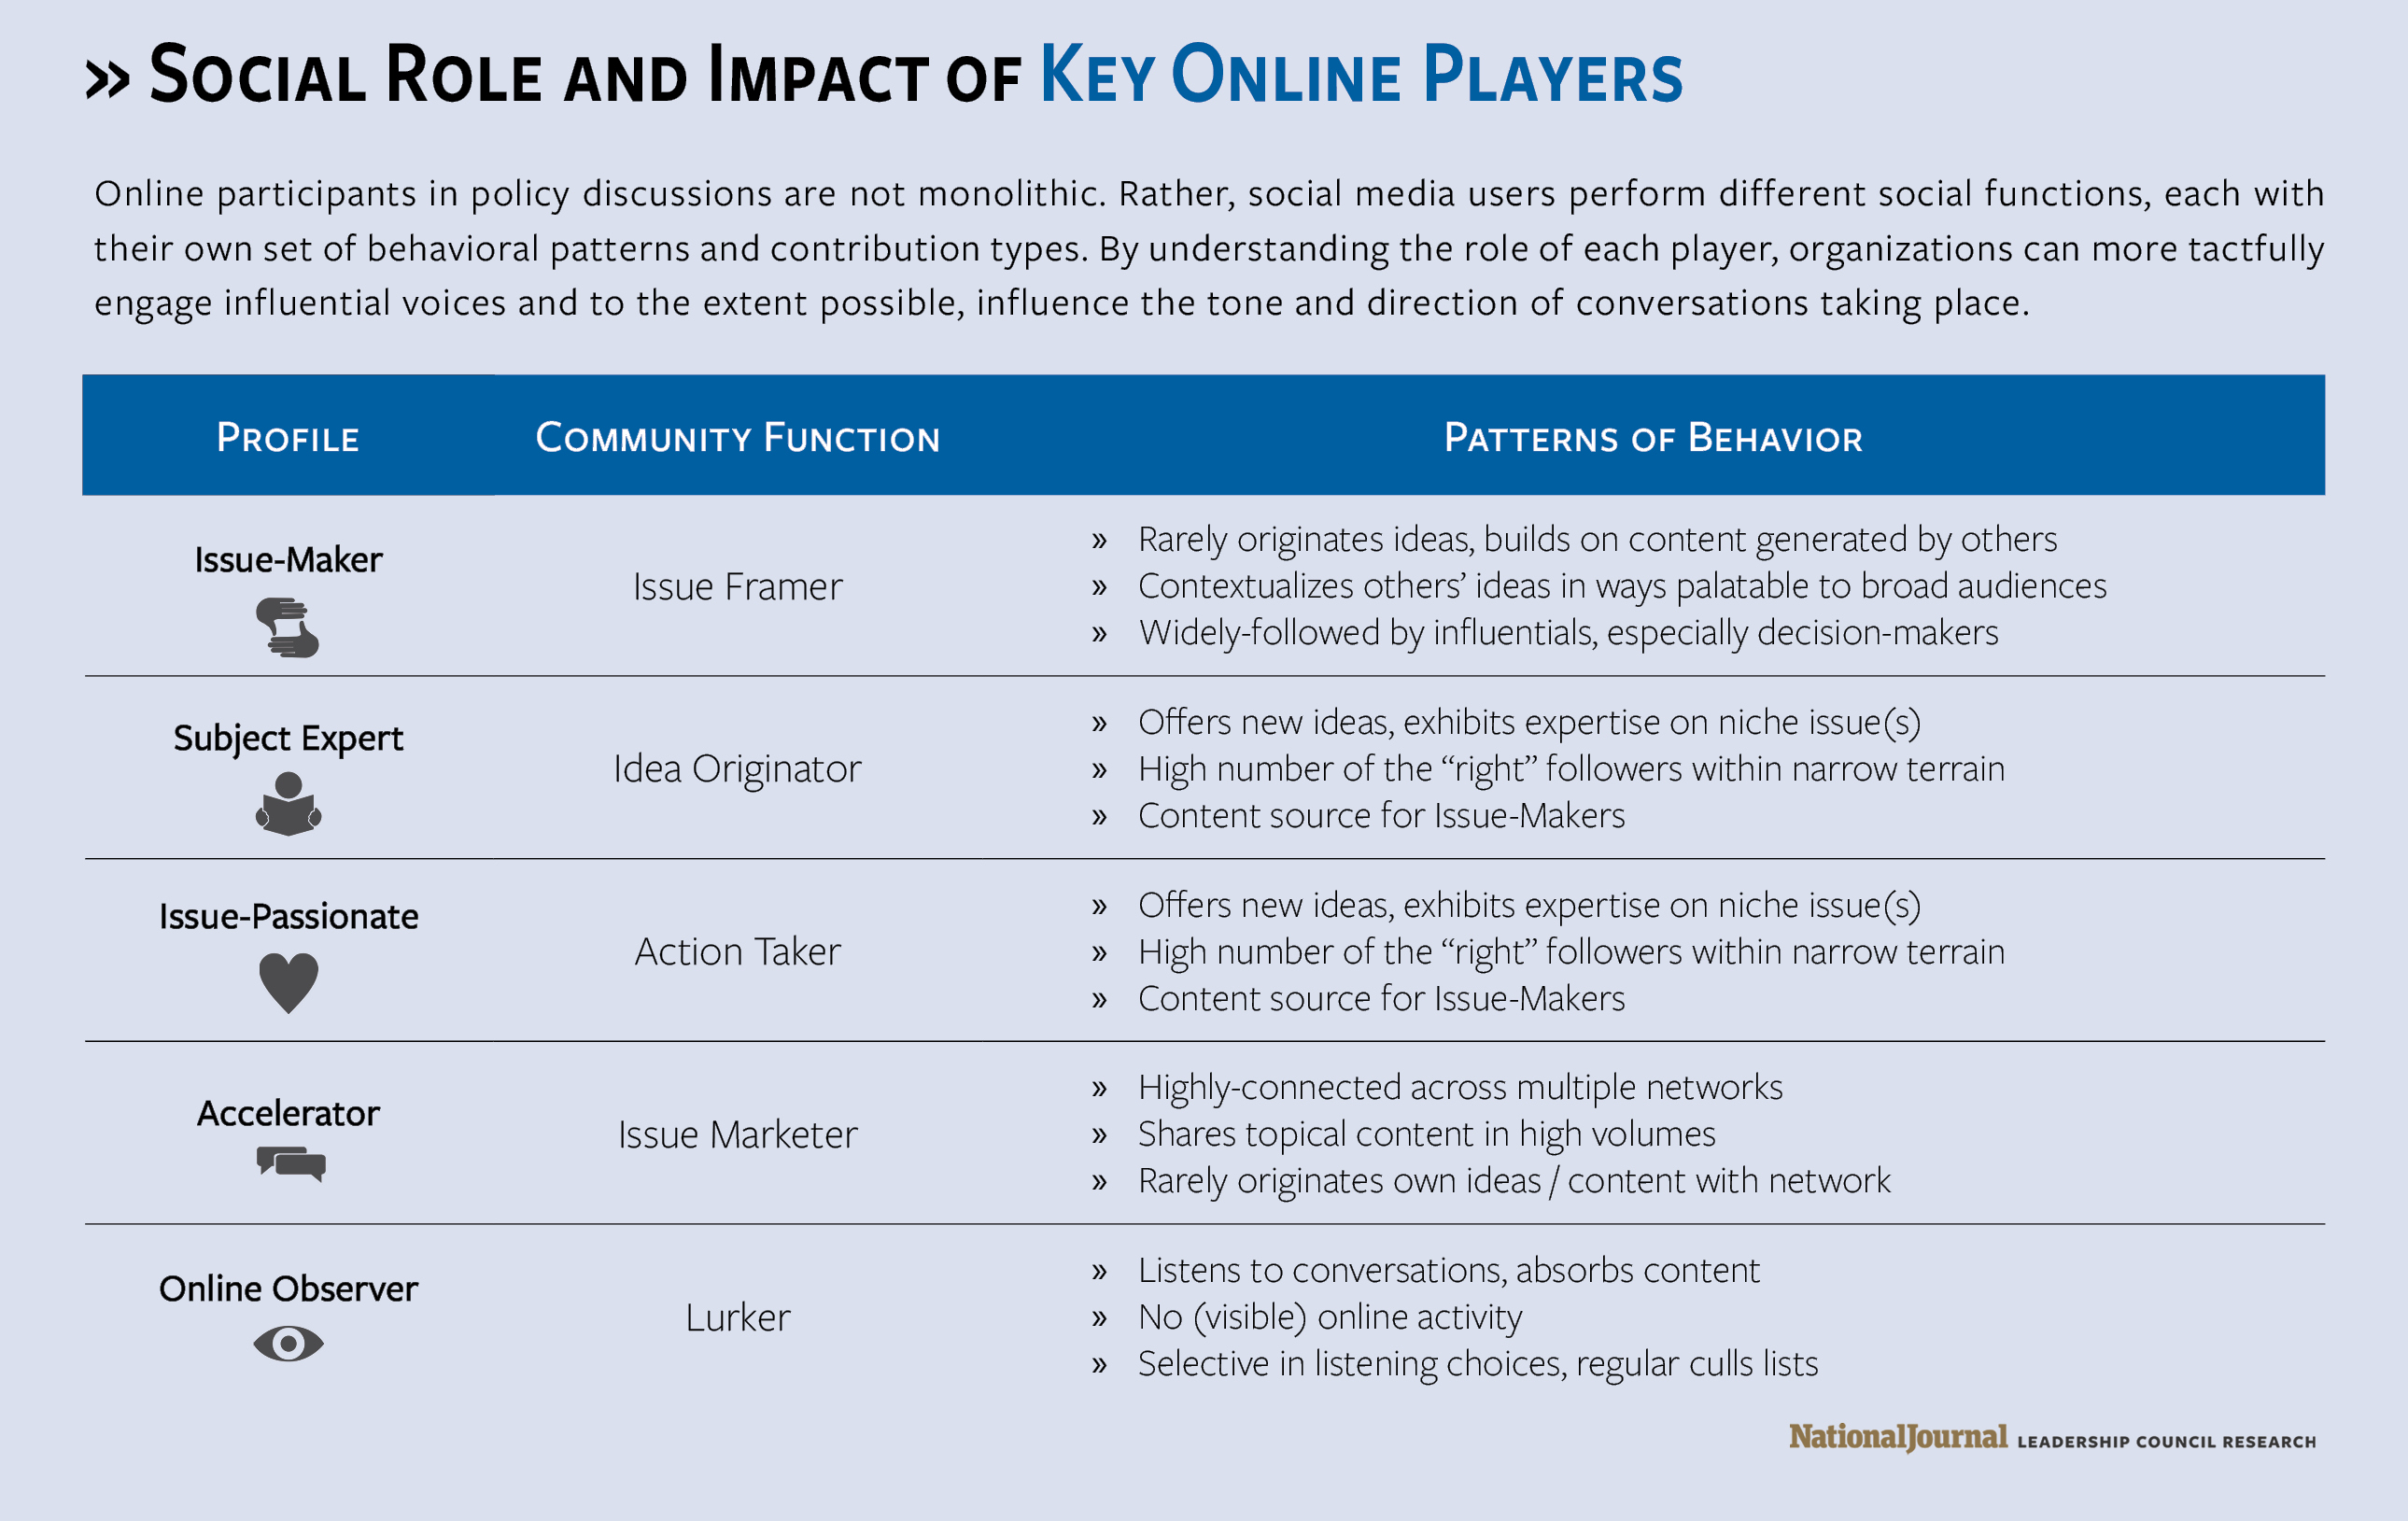 Social Role and Impact of Key Online Players